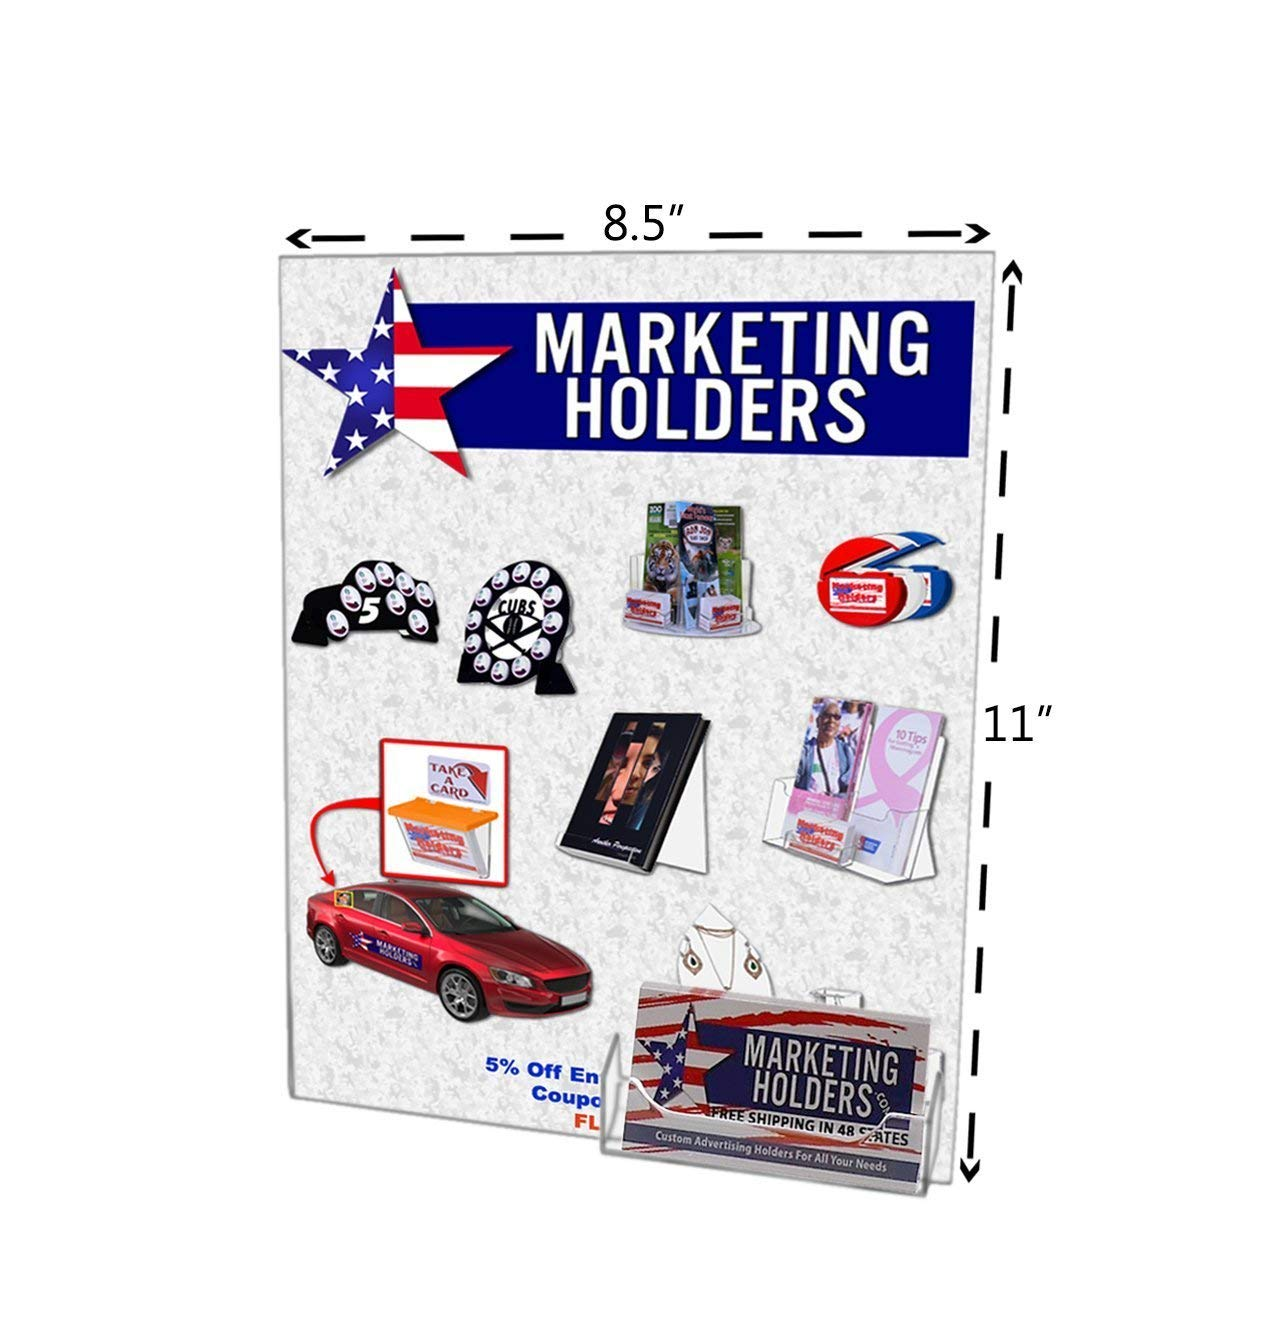 "Marketing Holders Wall Mount Acrylic Sign Holder Combination No Holes for 8.5x11 Sign & Business Card Pocket, 8.5"" x 11"", Lot of 100"